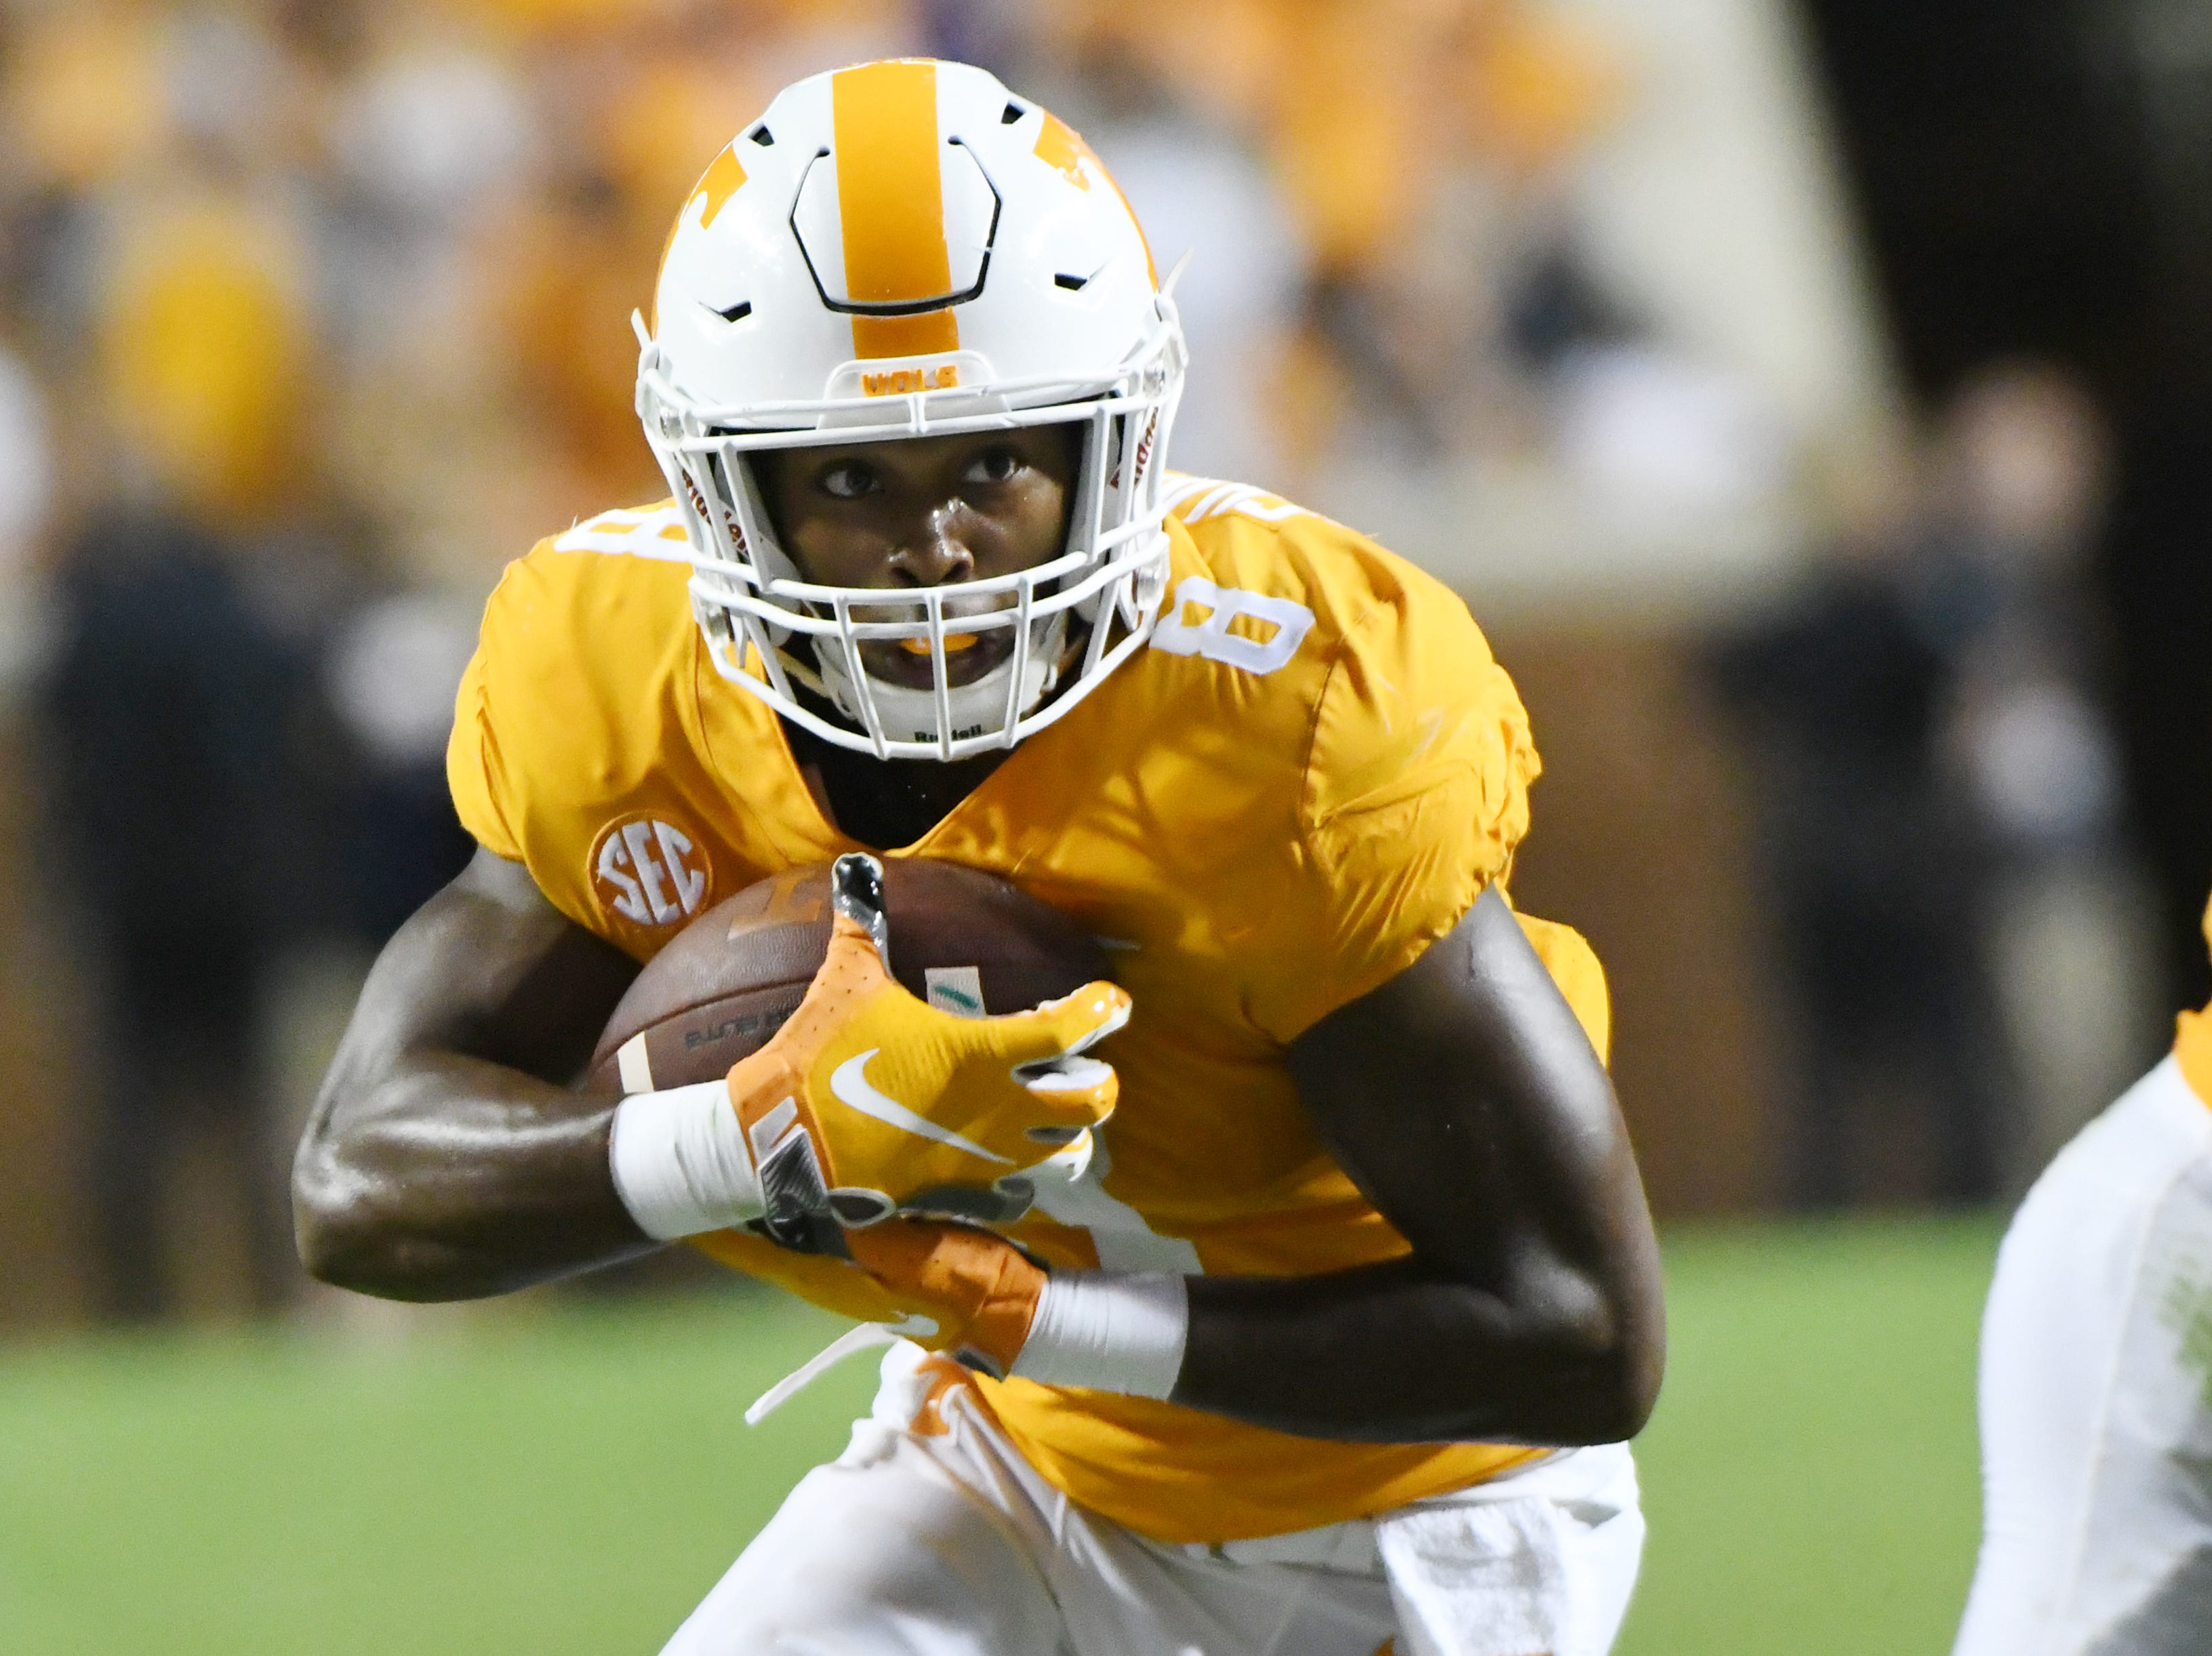 Tennessee running back Ty Chandler (8) runs the ball during a game between Tennessee and Florida at Neyland Stadium in Knoxville, Tennessee on Saturday, September 22, 2018.